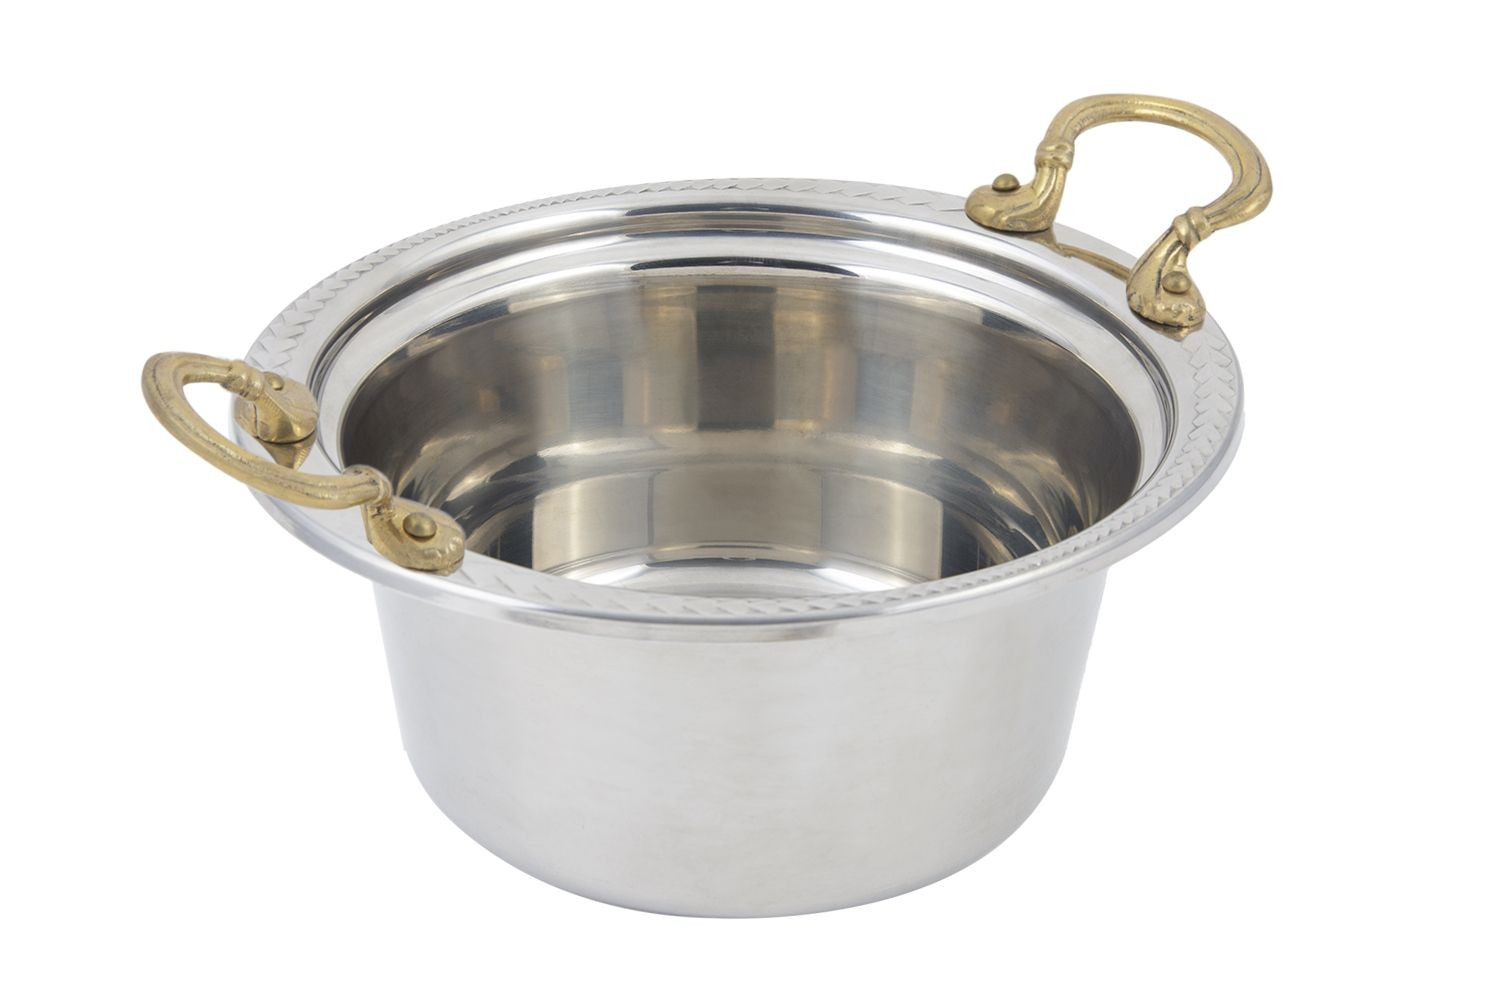 Bon Chef 5460HR Laurel Design Casserole Dish with Round Brass Handles, 5 Qt.